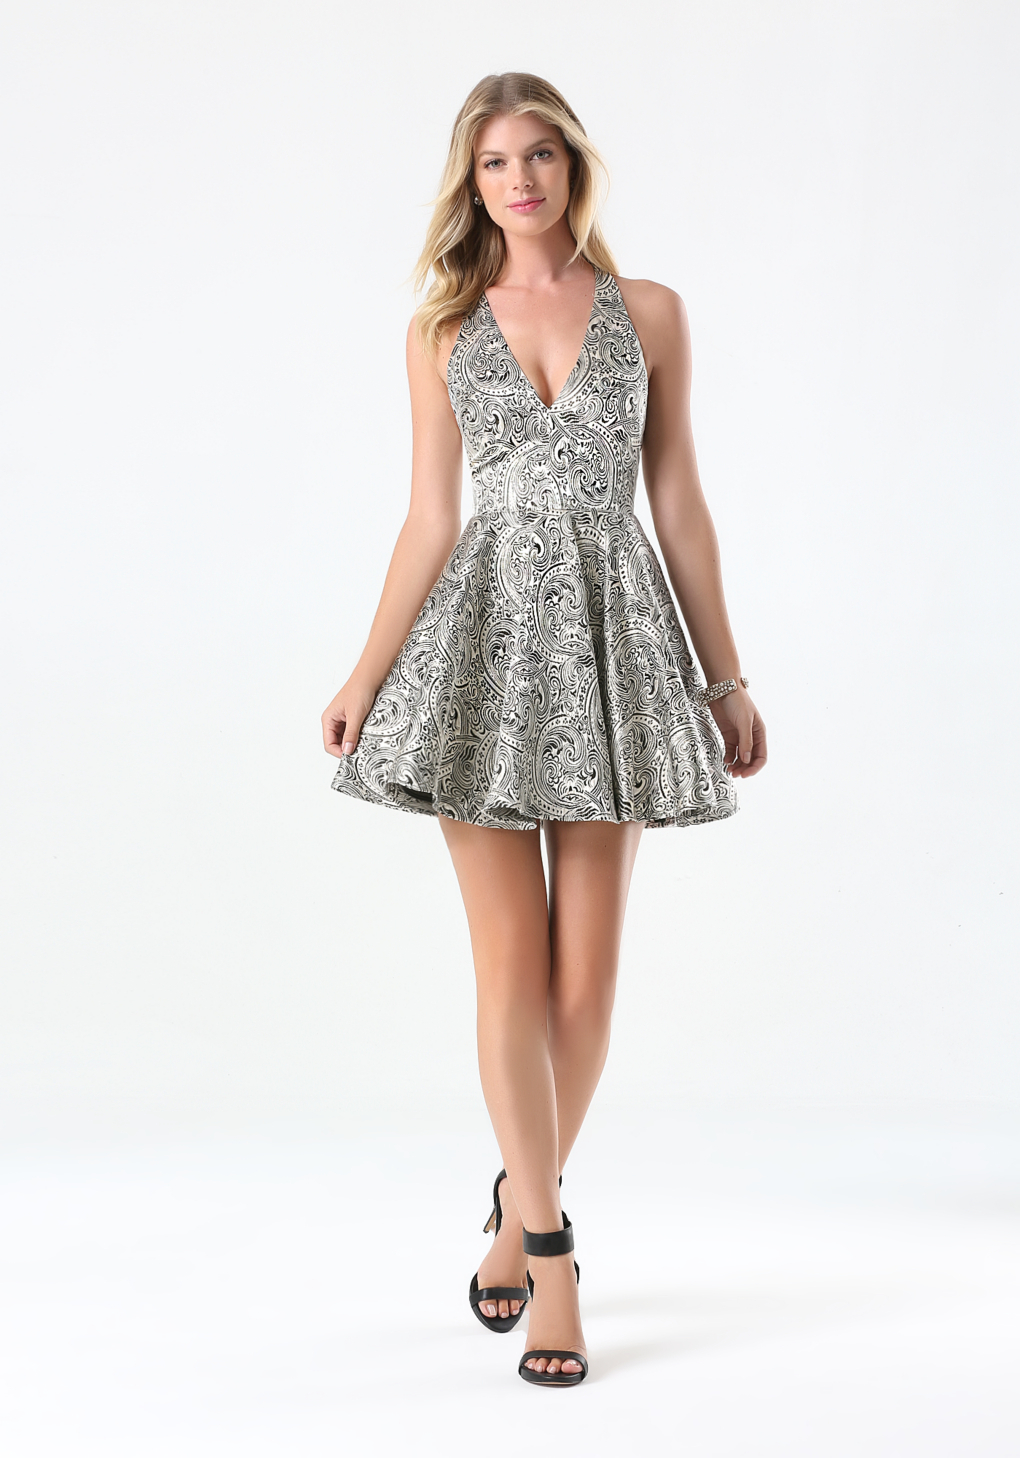 Bebe Jacquard Fit Amp Flare Dress In Champagne Black Black